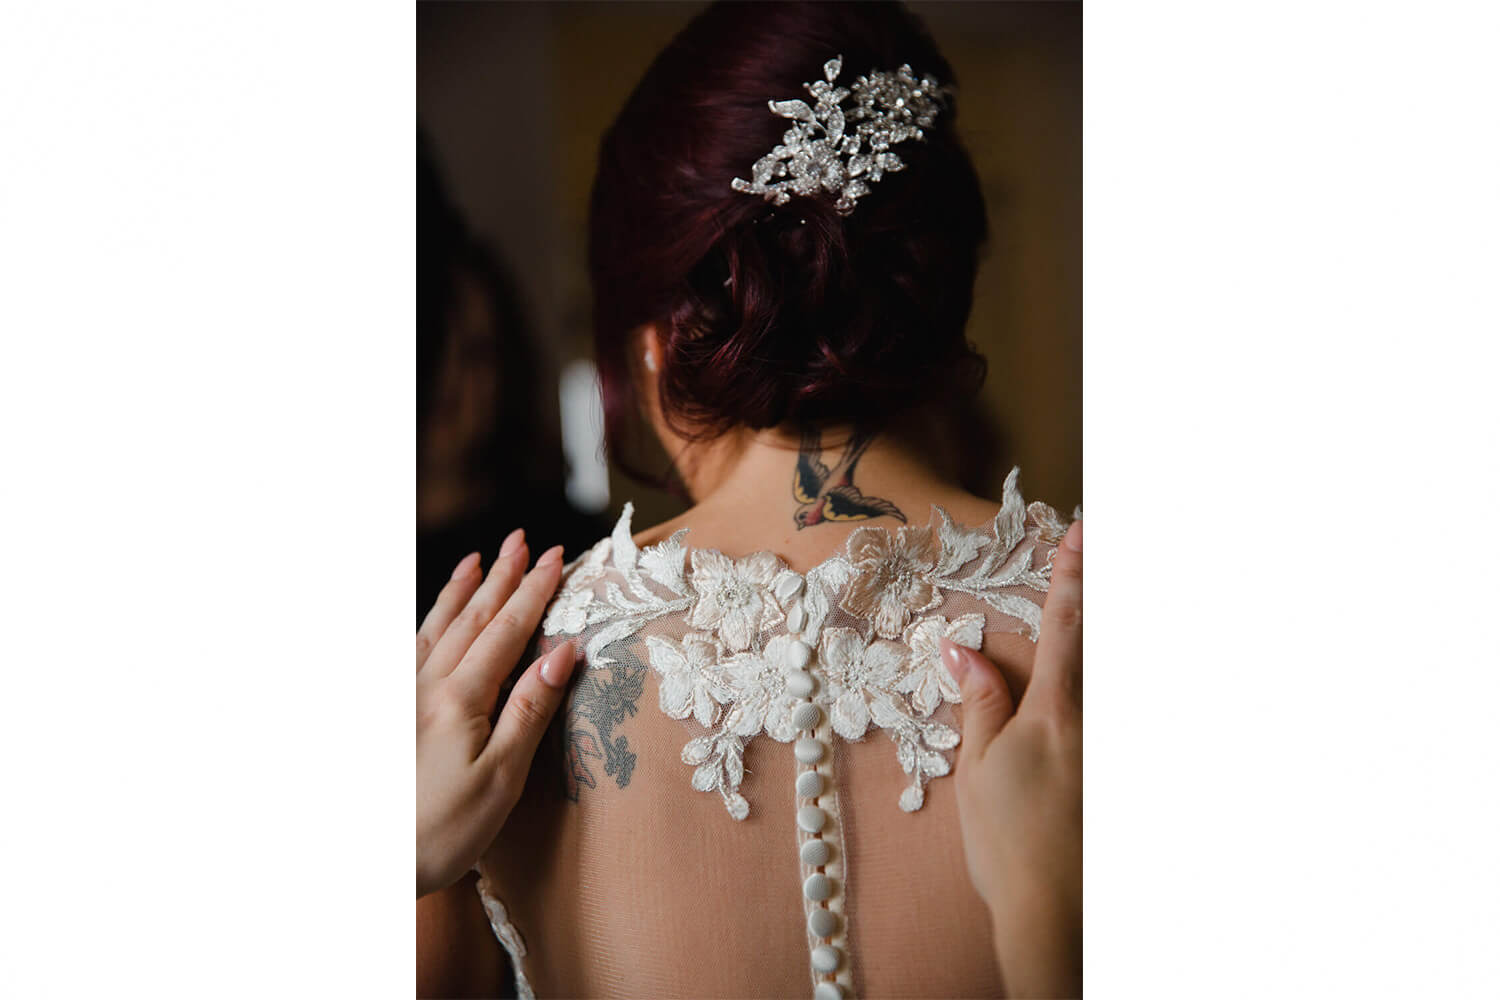 portrait photograph of buttons fastened for wedding dress detail